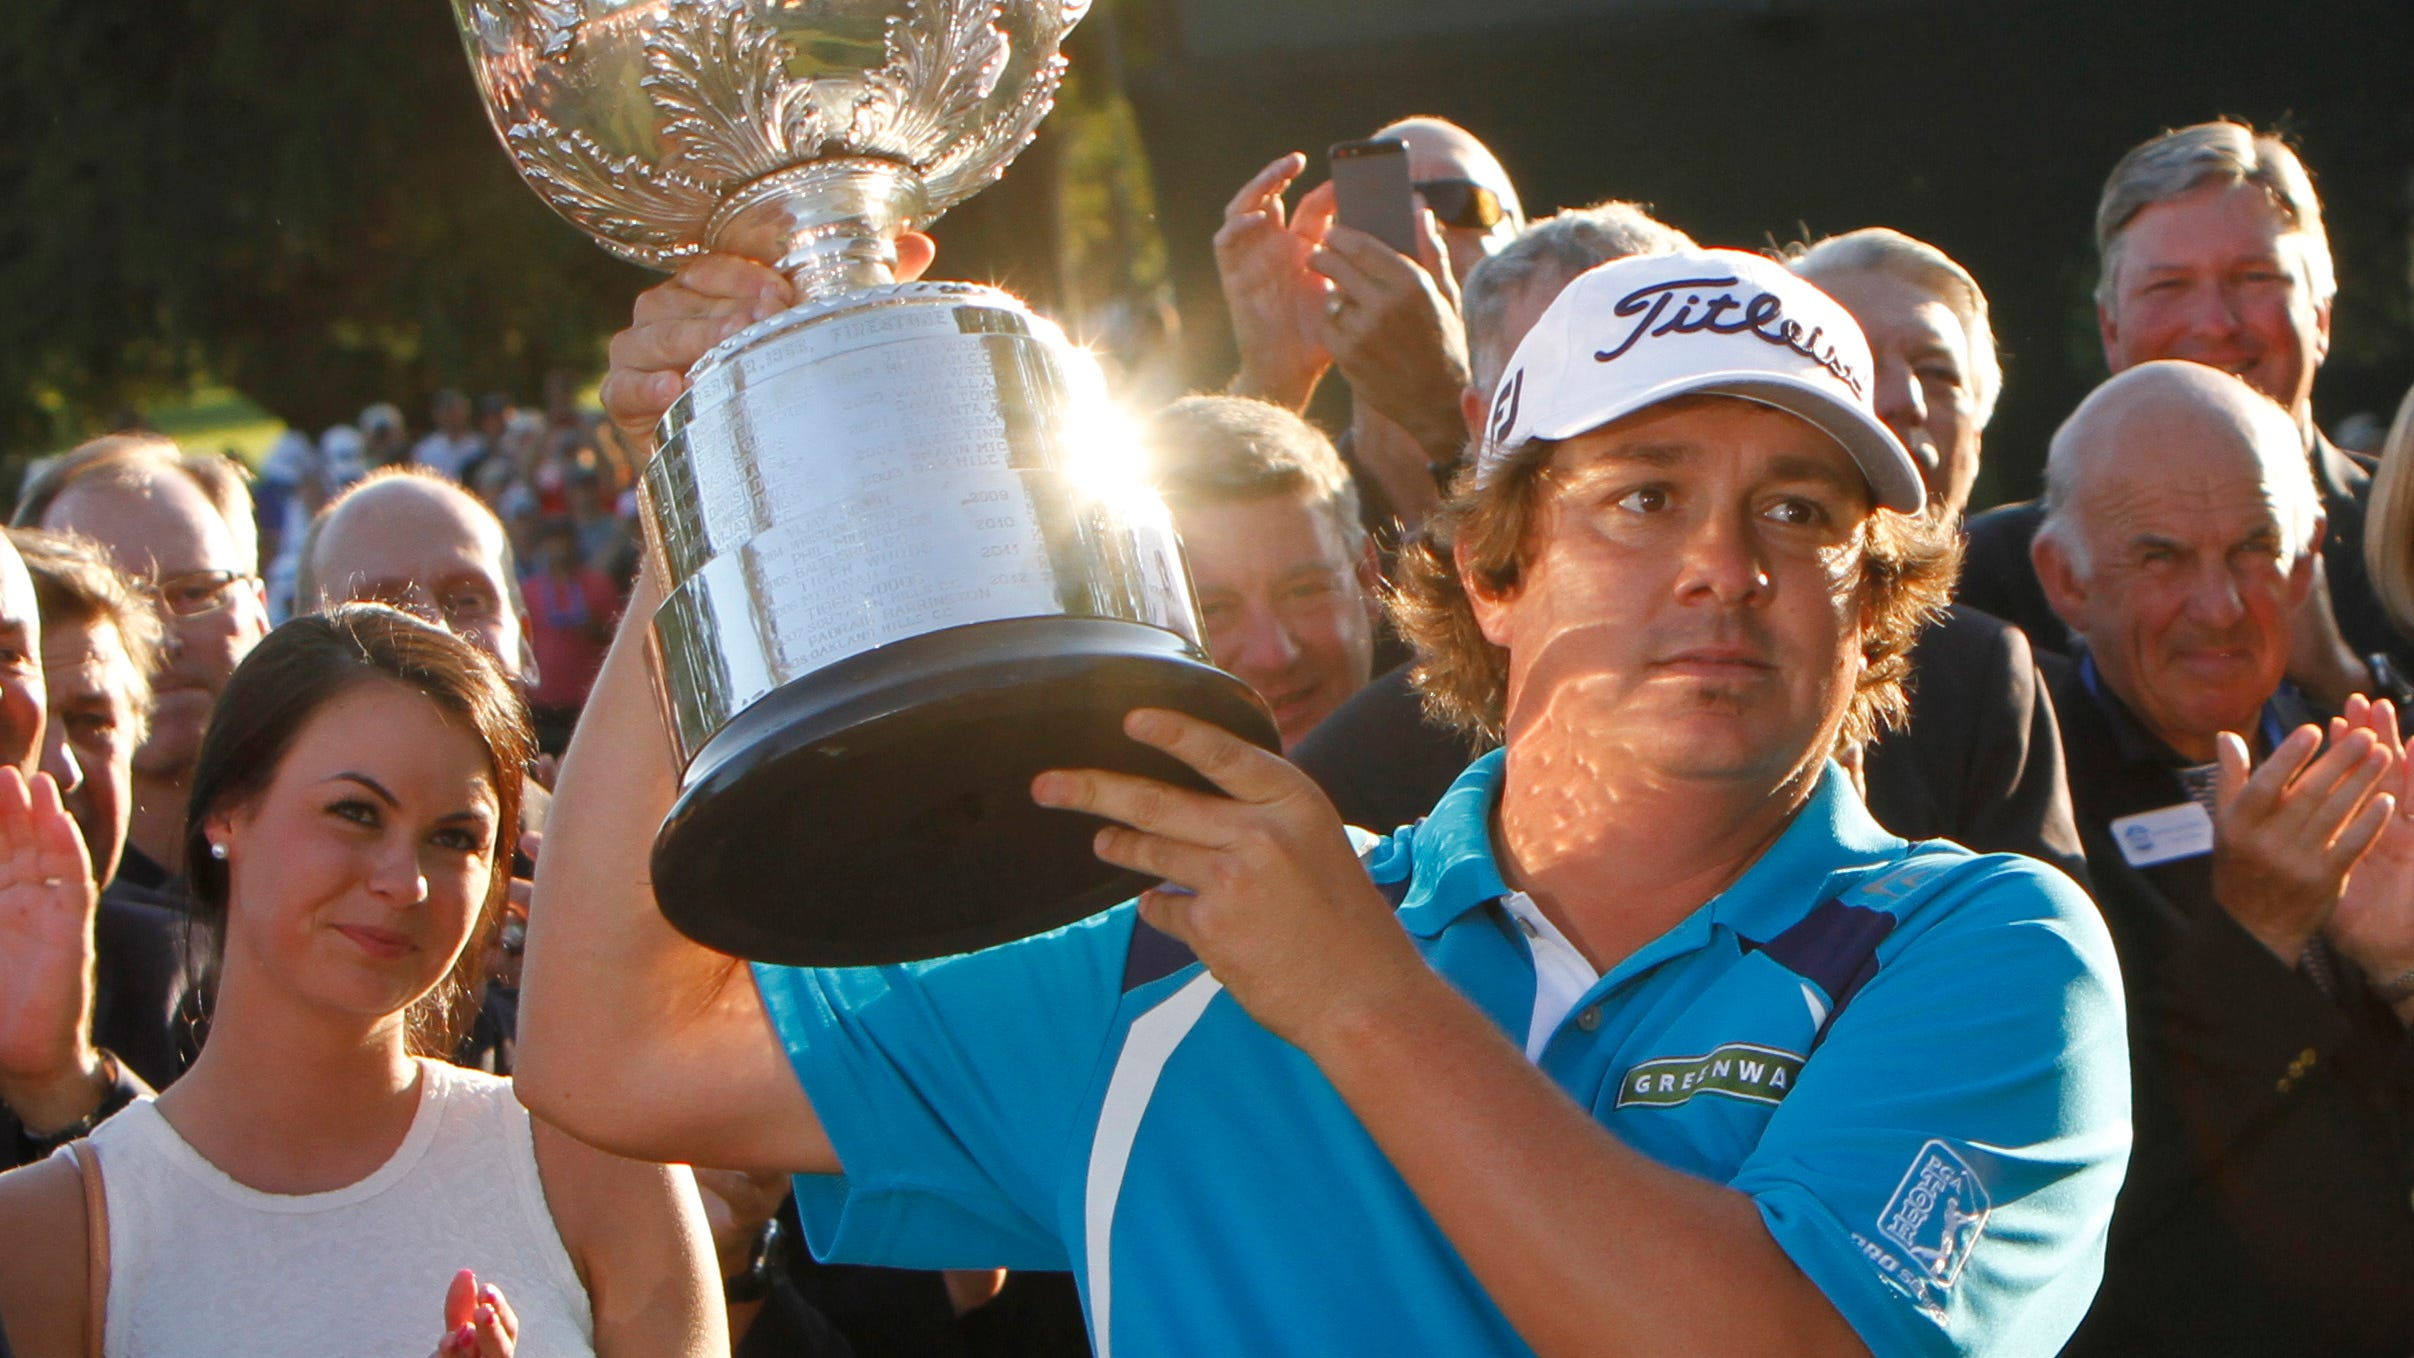 Jason Dufner raises the Wanamaker Trophy as wife Amanda looks on following his two stroke victory at the final round of the 95th PGA Championship Sunday, Aug. 11, 2013 at Oak Hill Country Club in Pittsford.